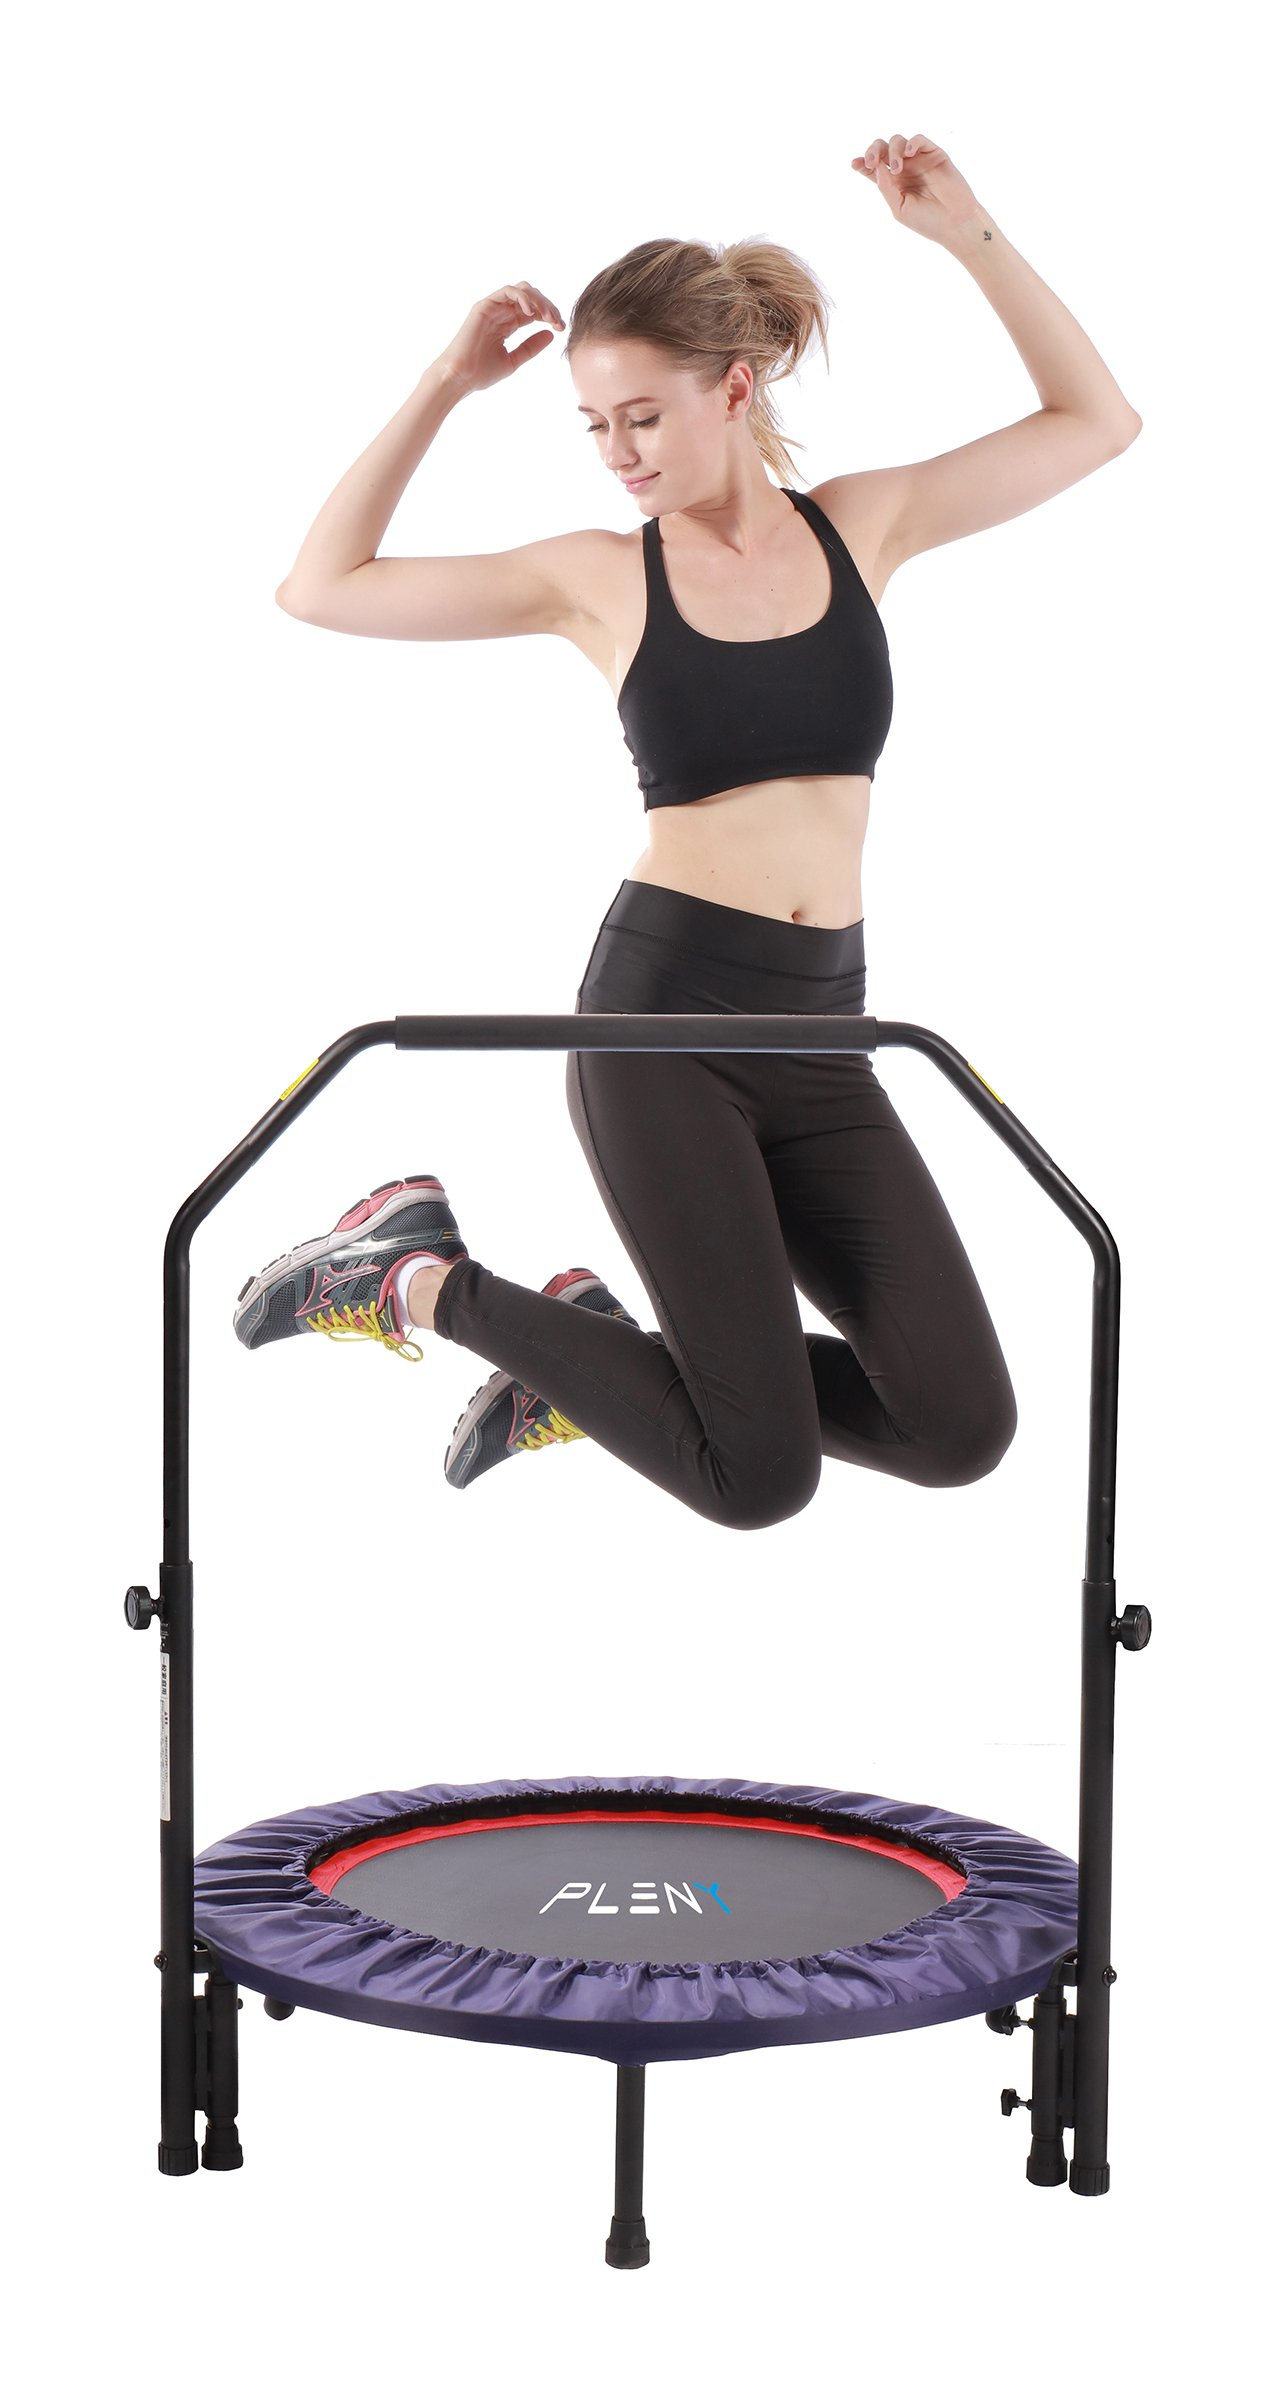 PLENY 38'' Mini Fitness Trampoline Handle Bar, 2-in-1 Lean Rebounder, Non-Foldable